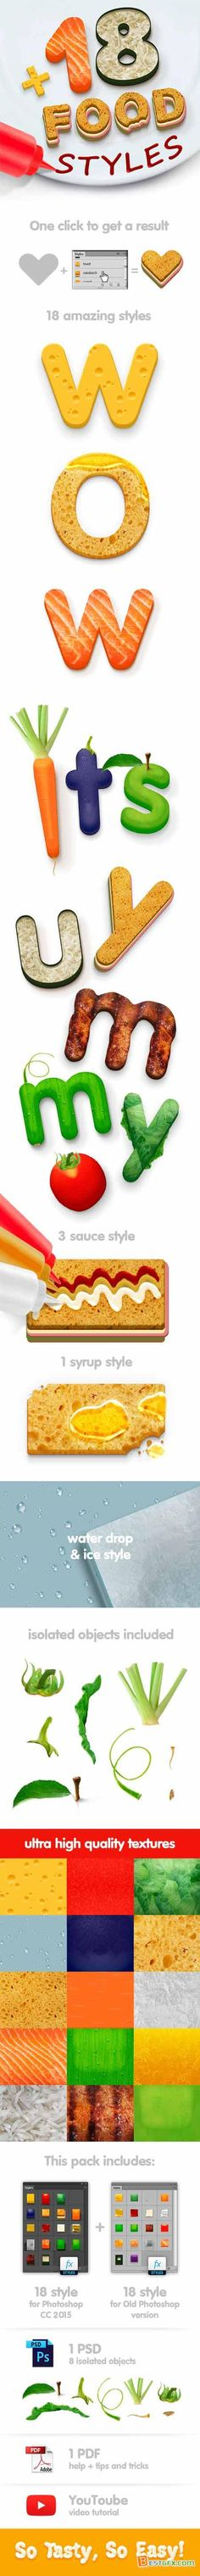 Graphicriver 18 Food Styles 13394989